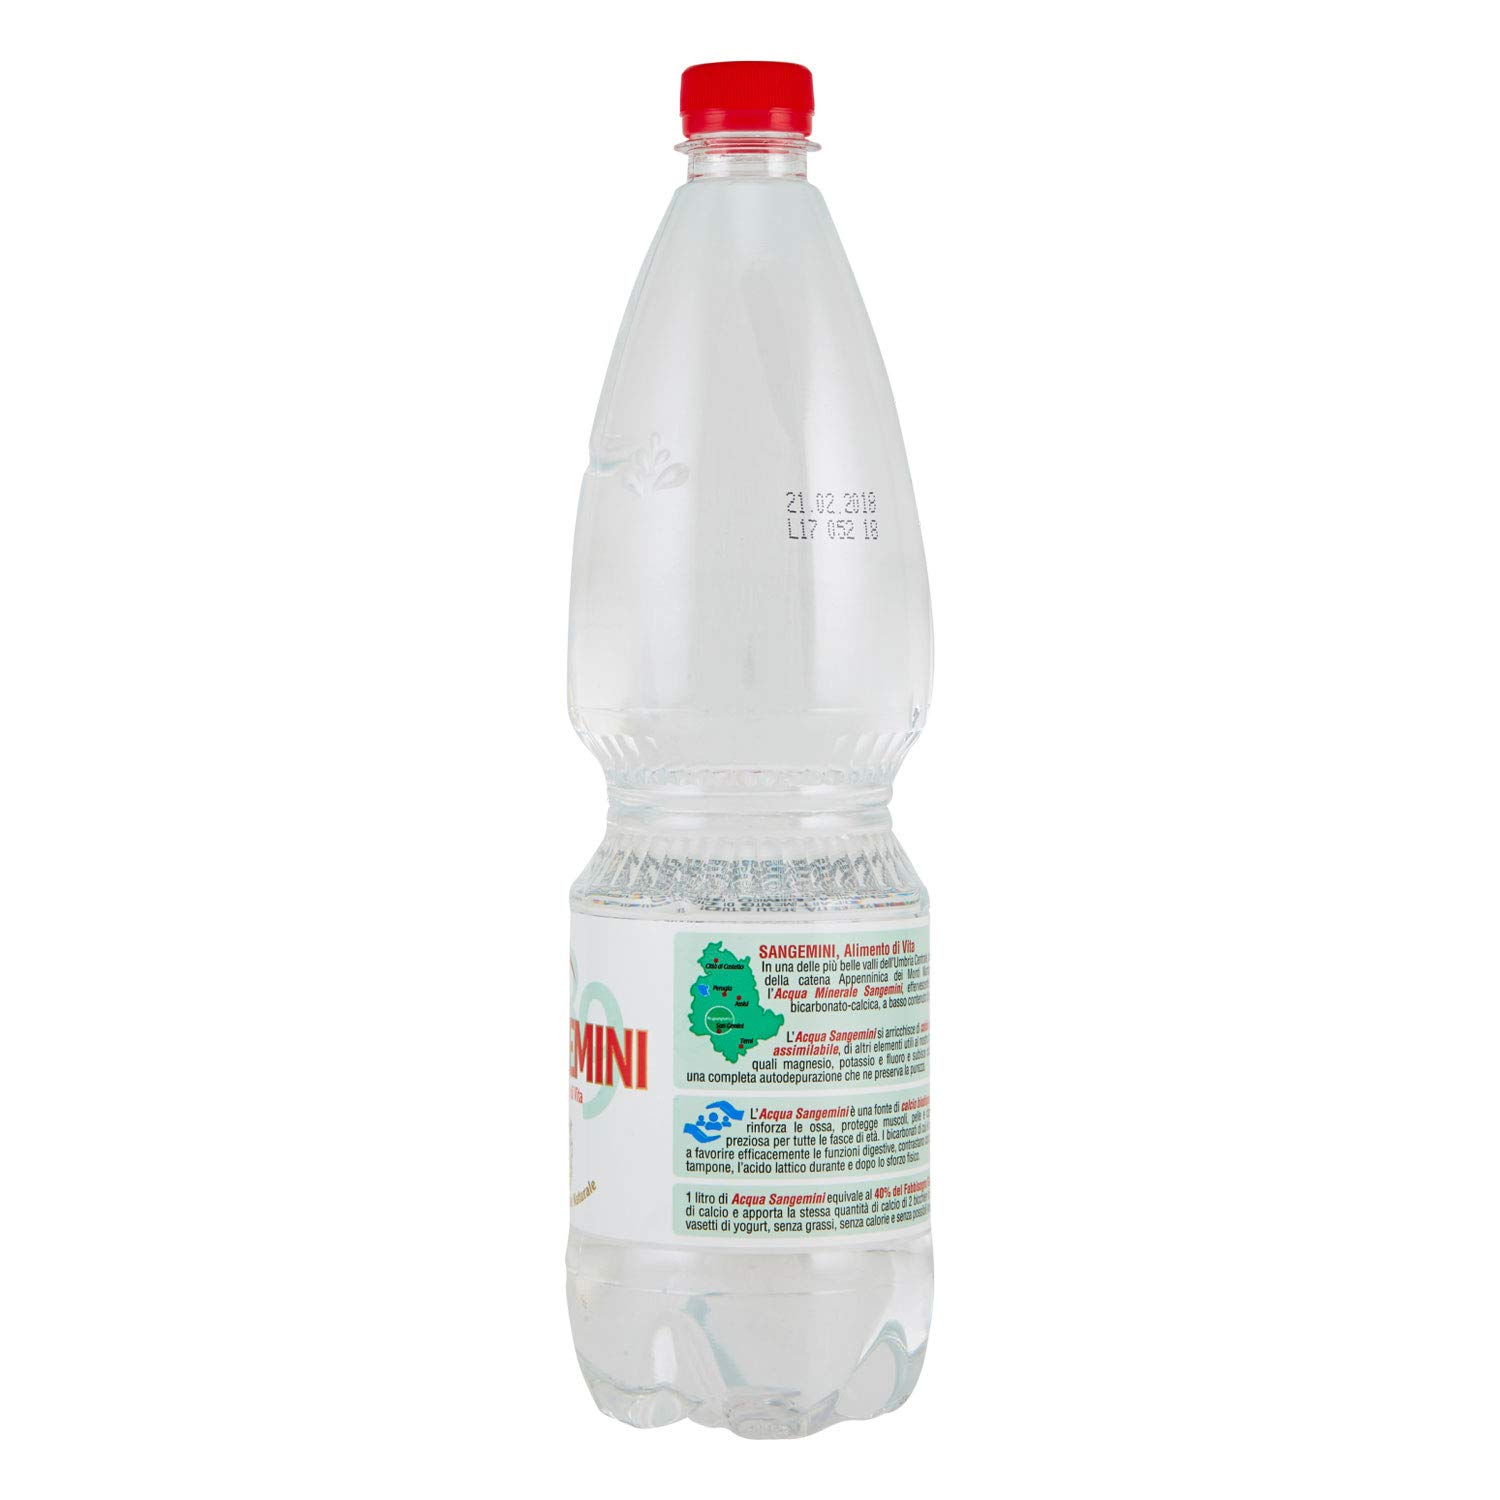 Amazon.com : Sangemini: Natural Mineral Water * 2.11 Pints (1l) Bottles (Pack of 6) * [ Italian Import ] : Grocery & Gourmet Food